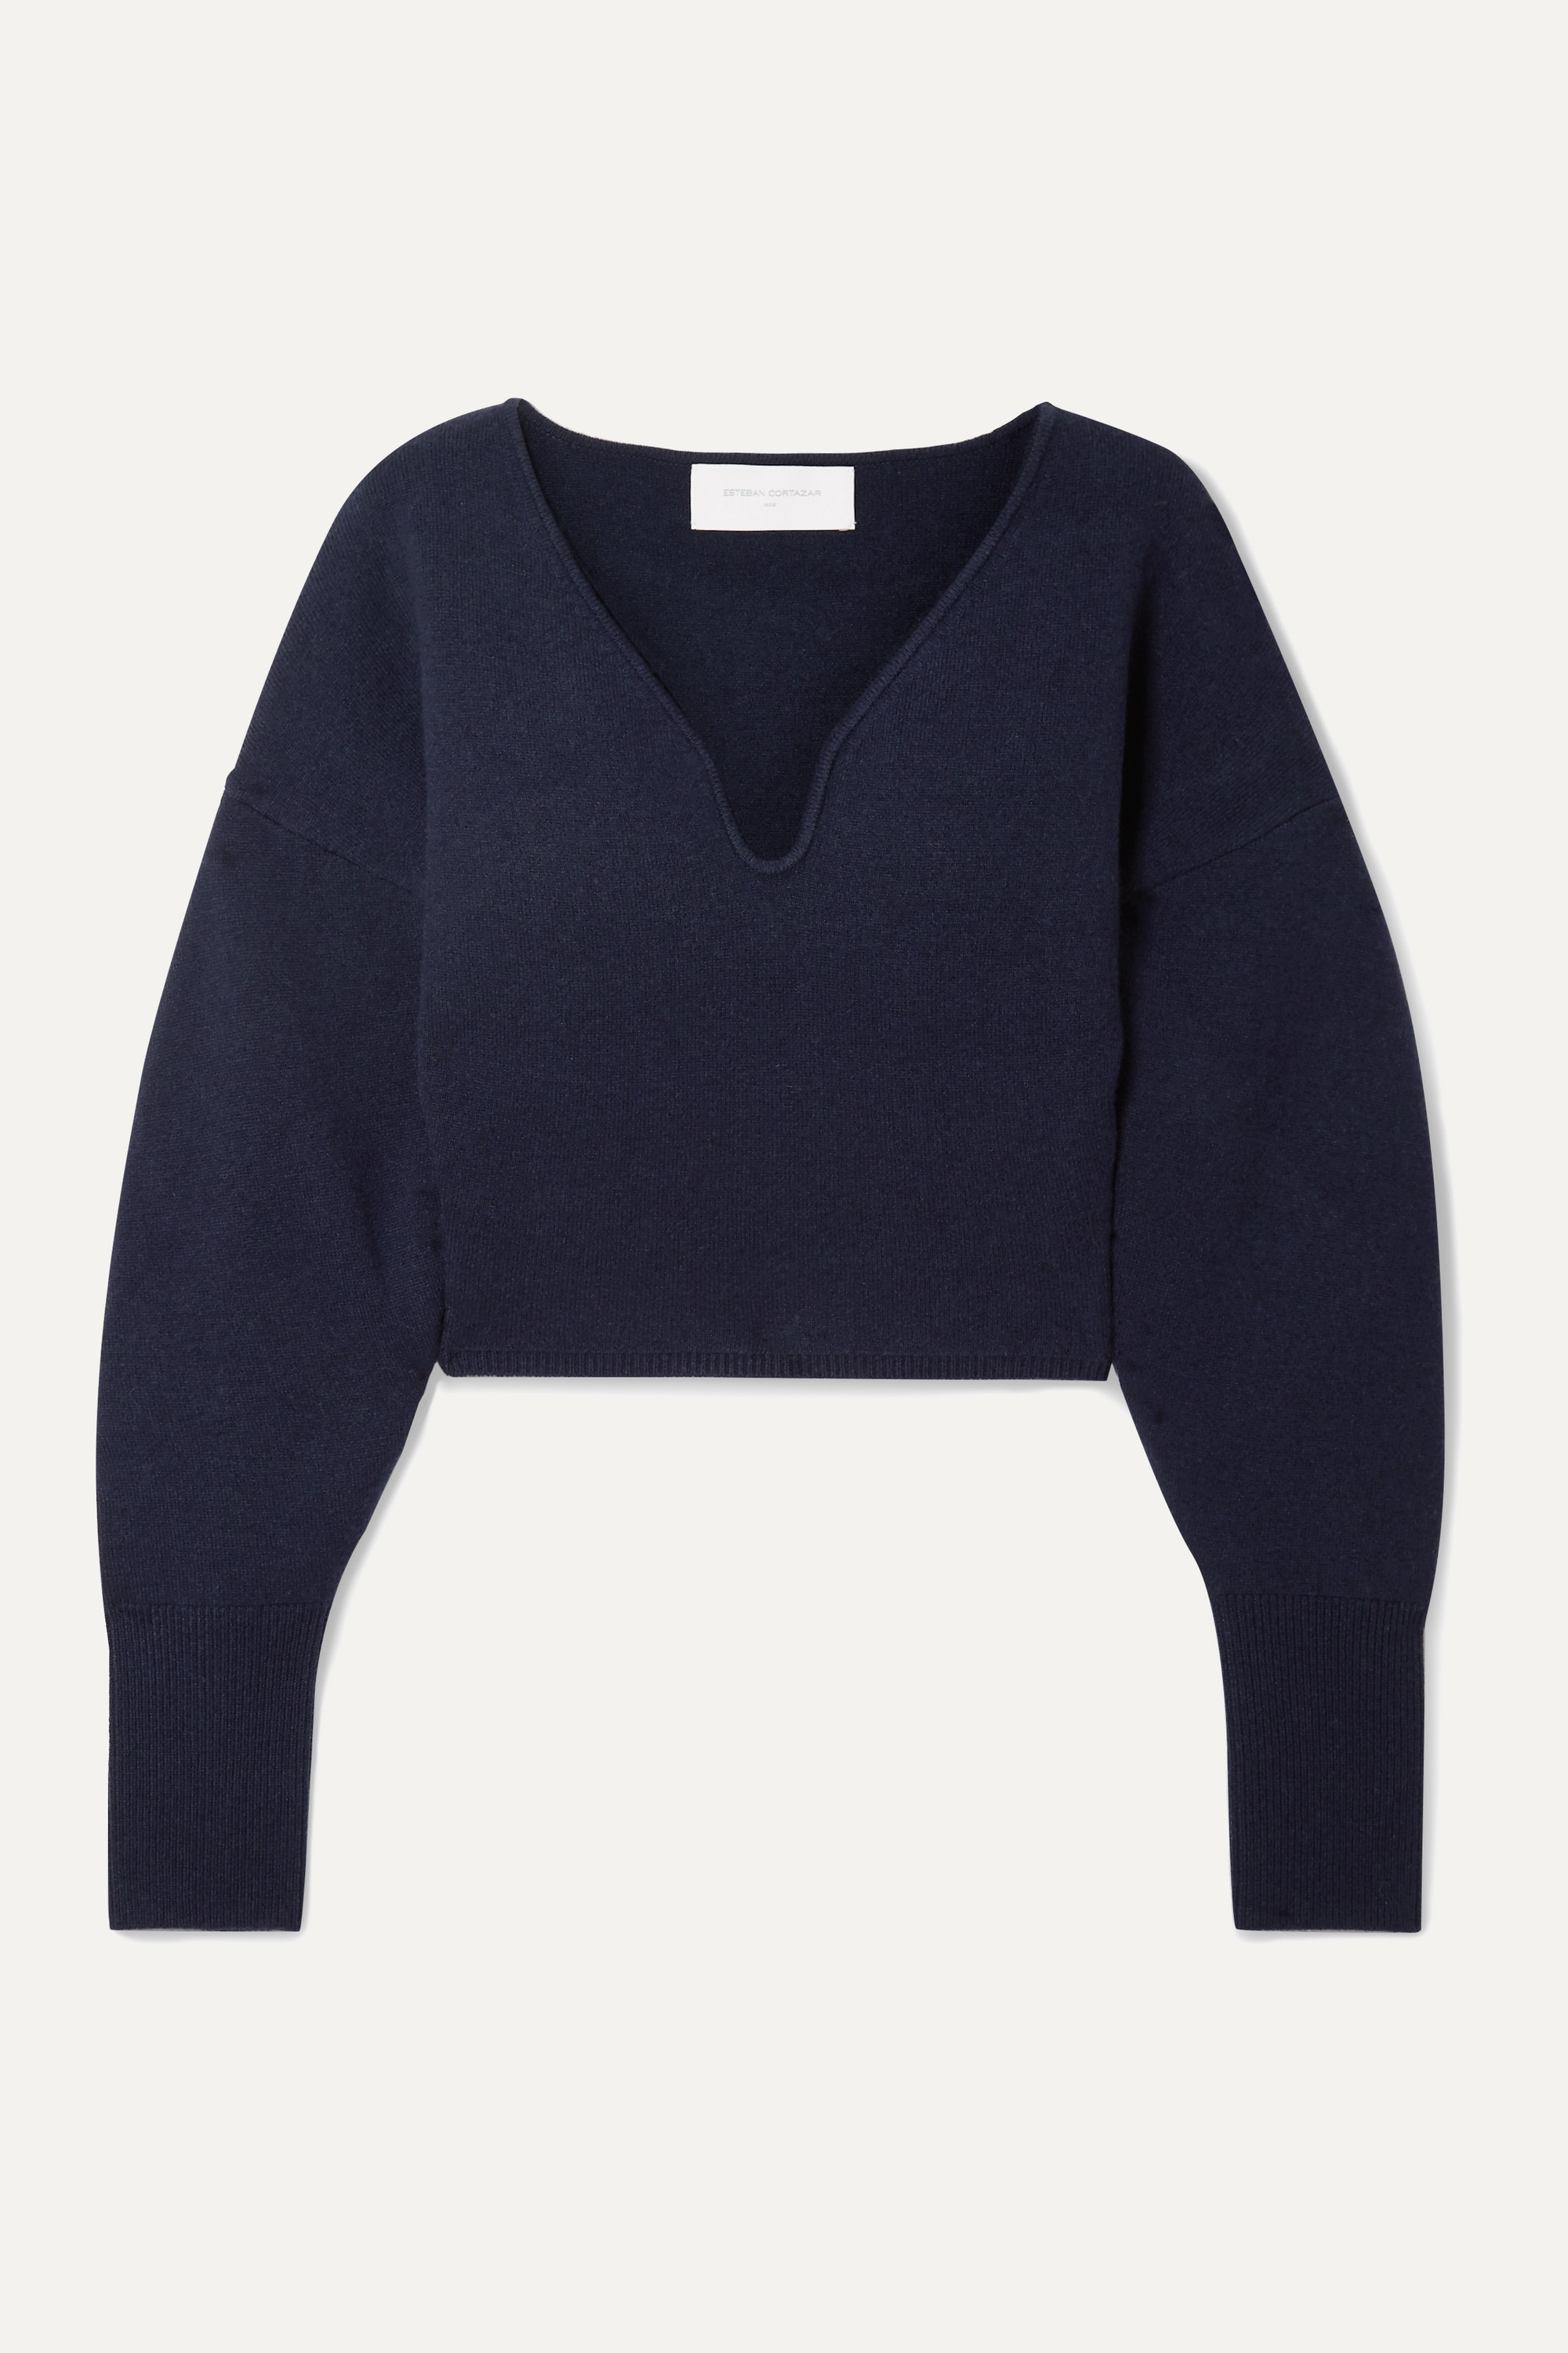 Esteban Cortázar Cropped stretch-wool and cashmere-blend sweater